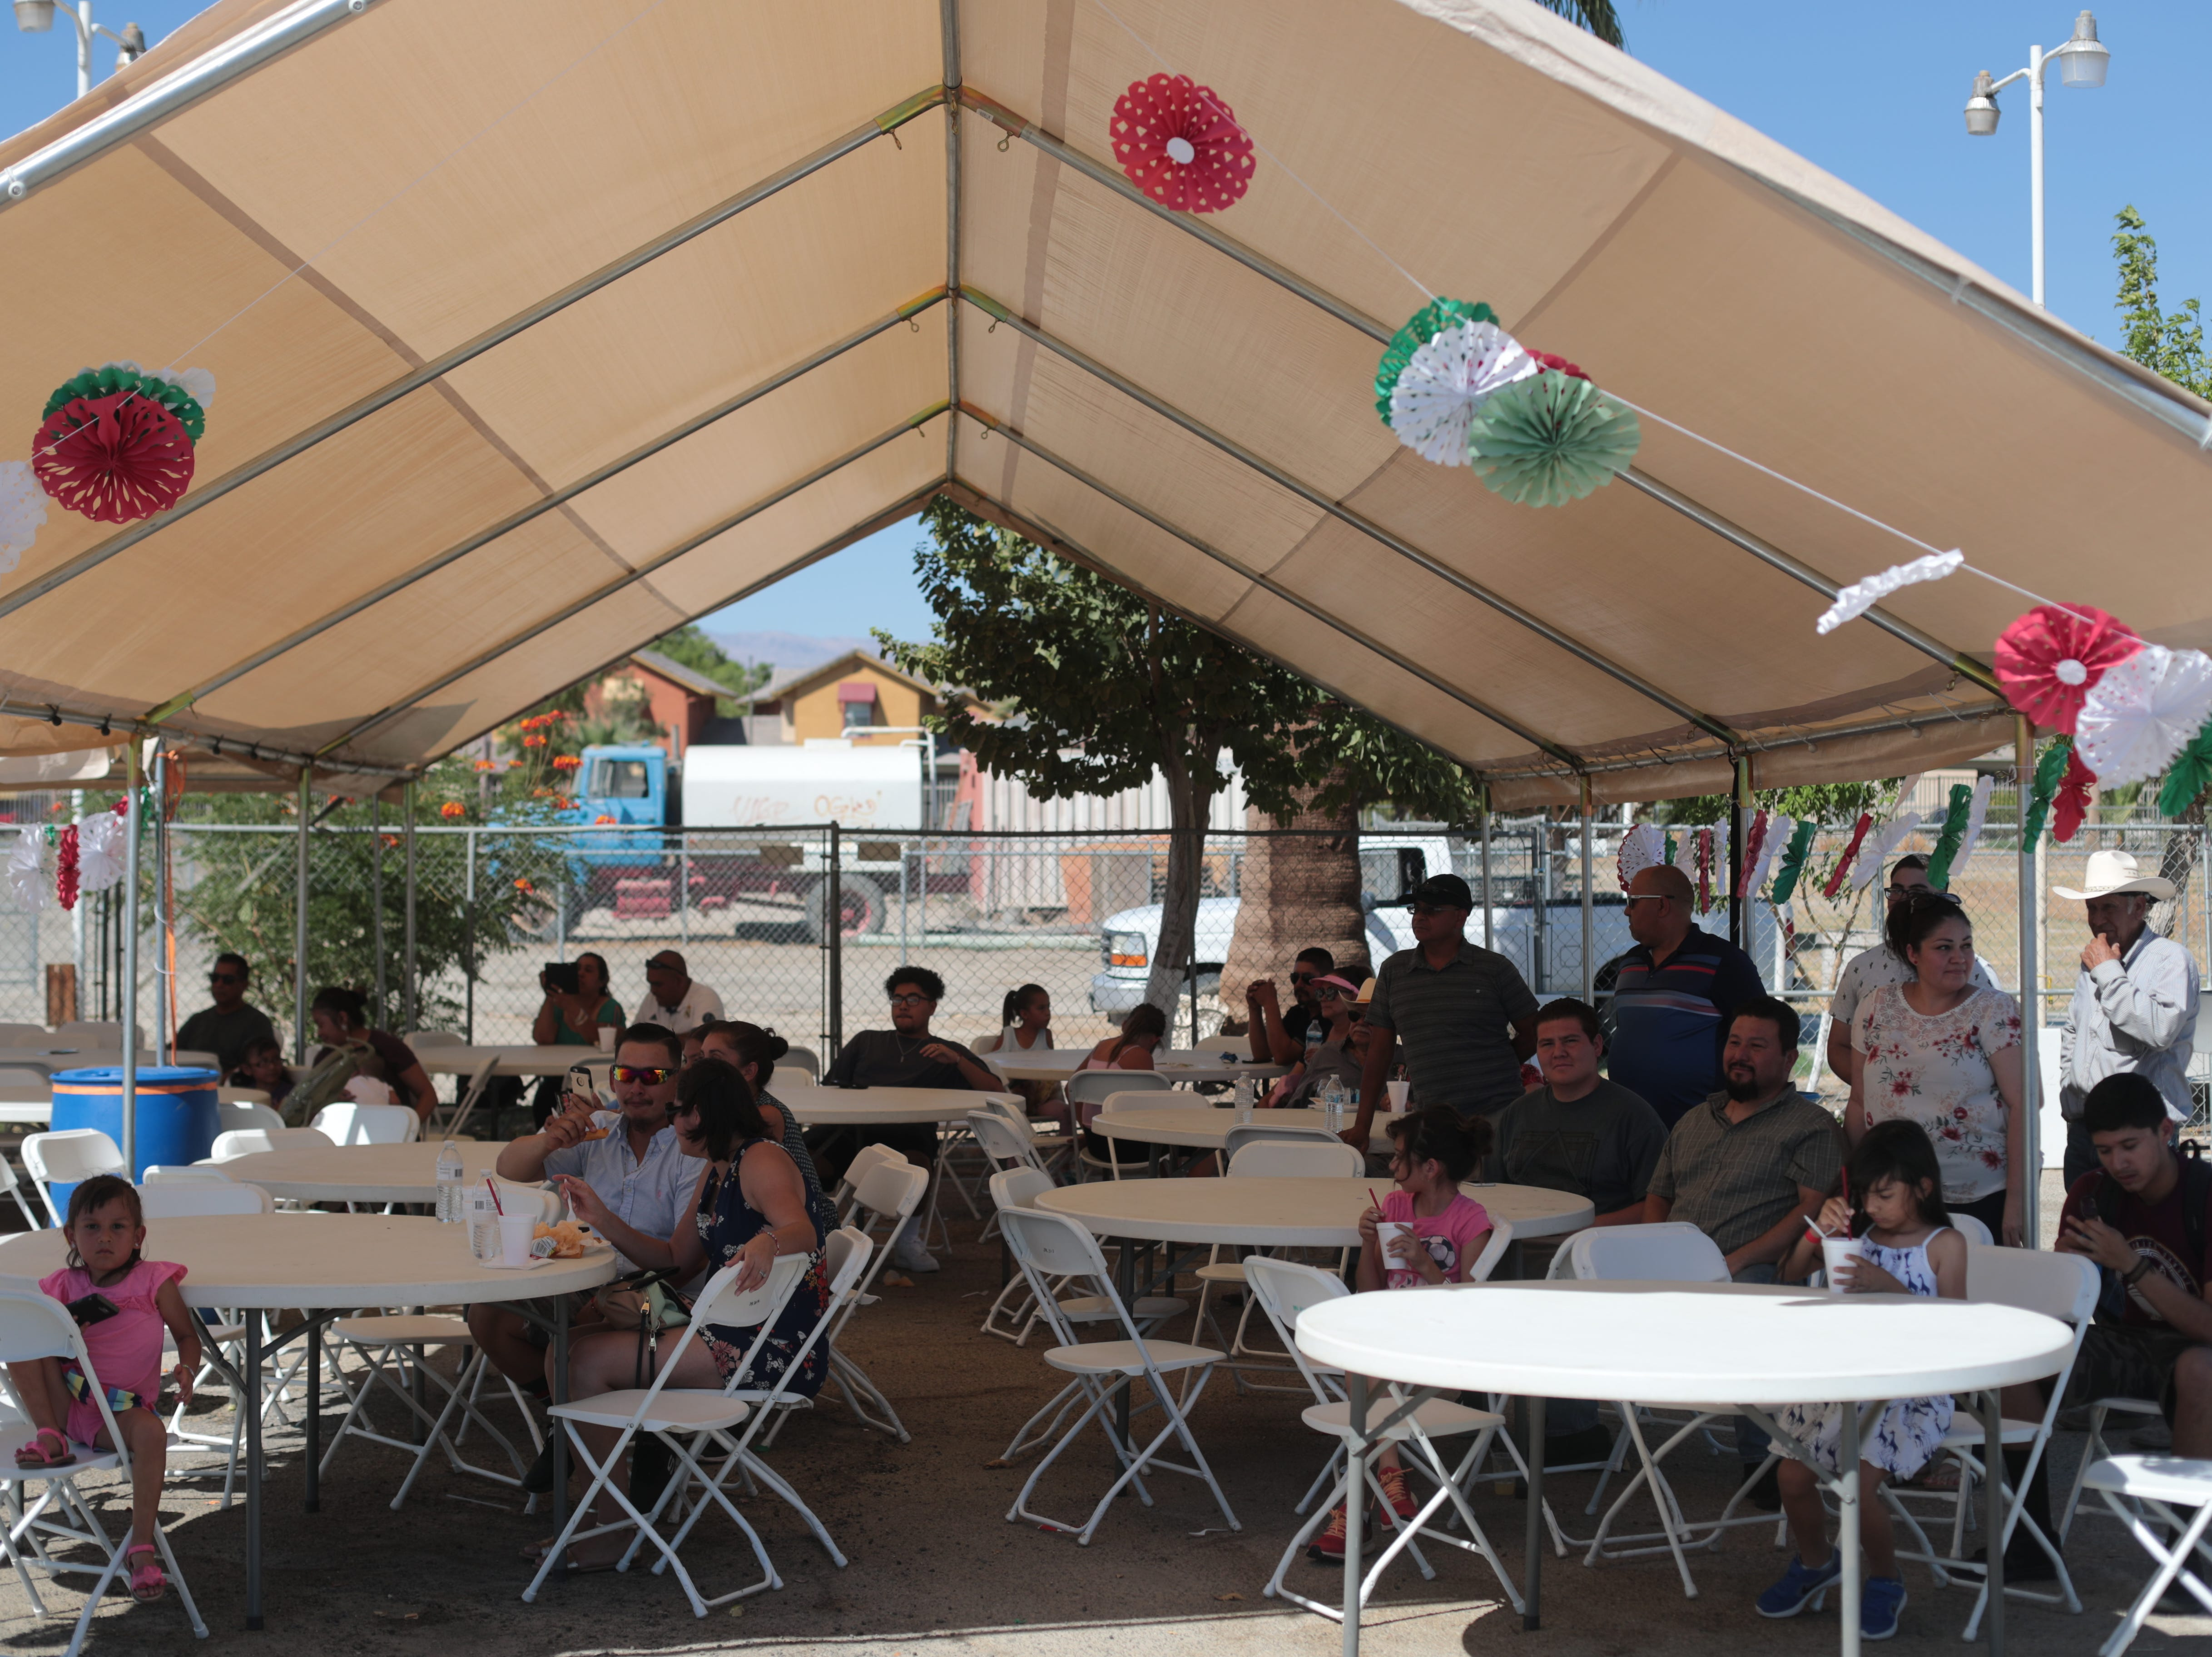 People in the shade at the Mexican independence day celebration at Our Virgin of Guadalupe Church in Mecca on Saturday, September 15, 2018.